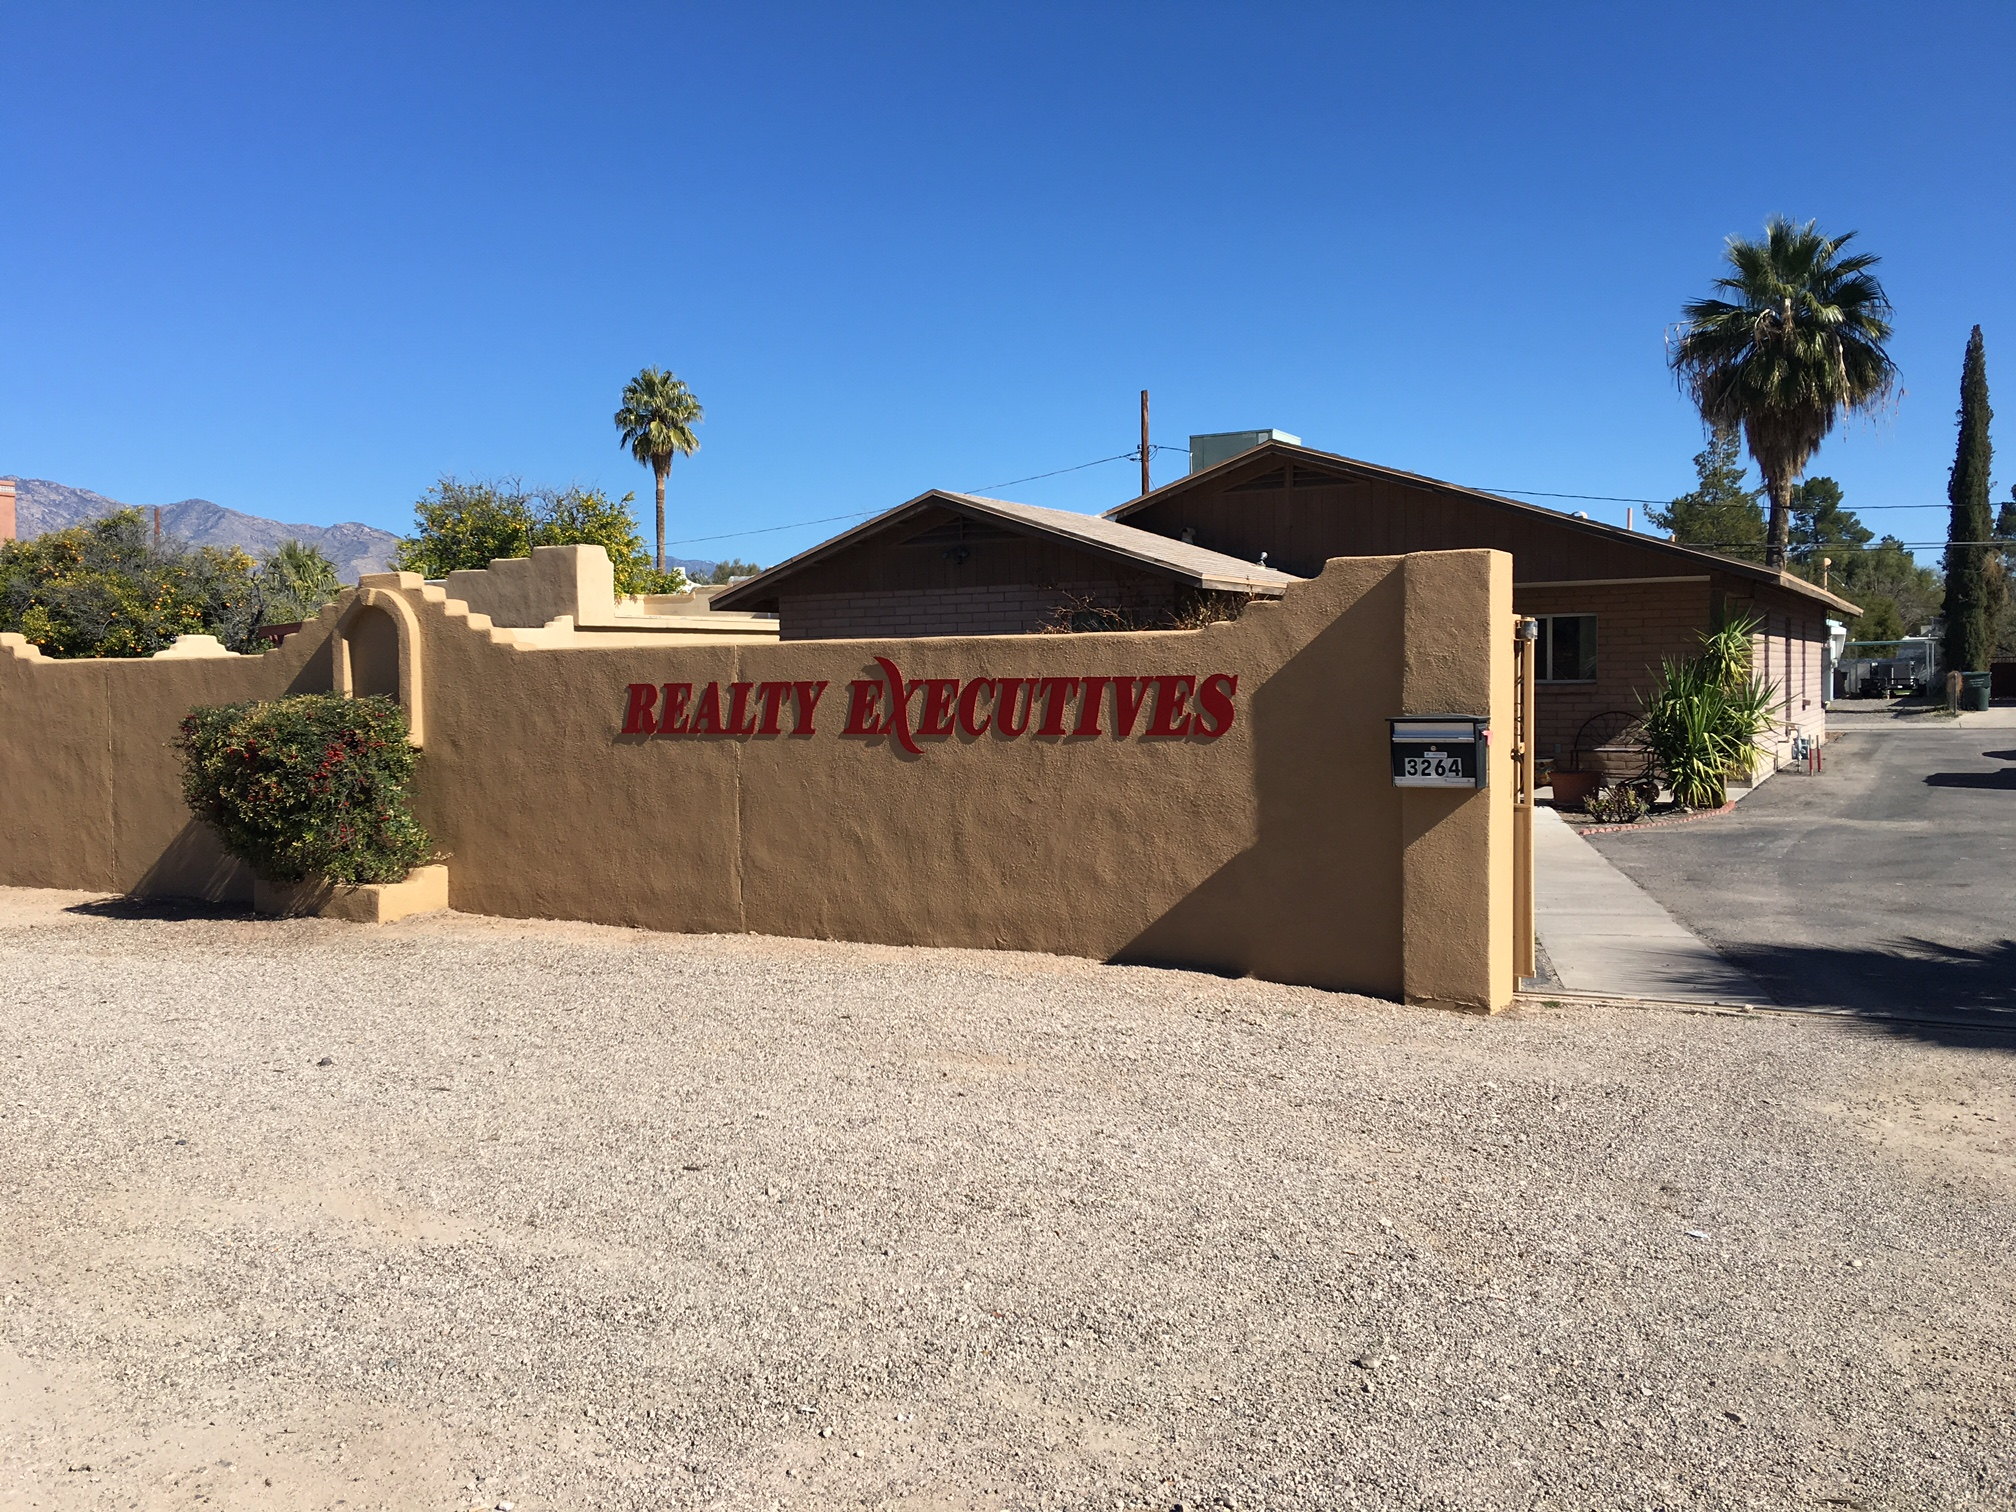 Realty Executives Tucson (Country Club)